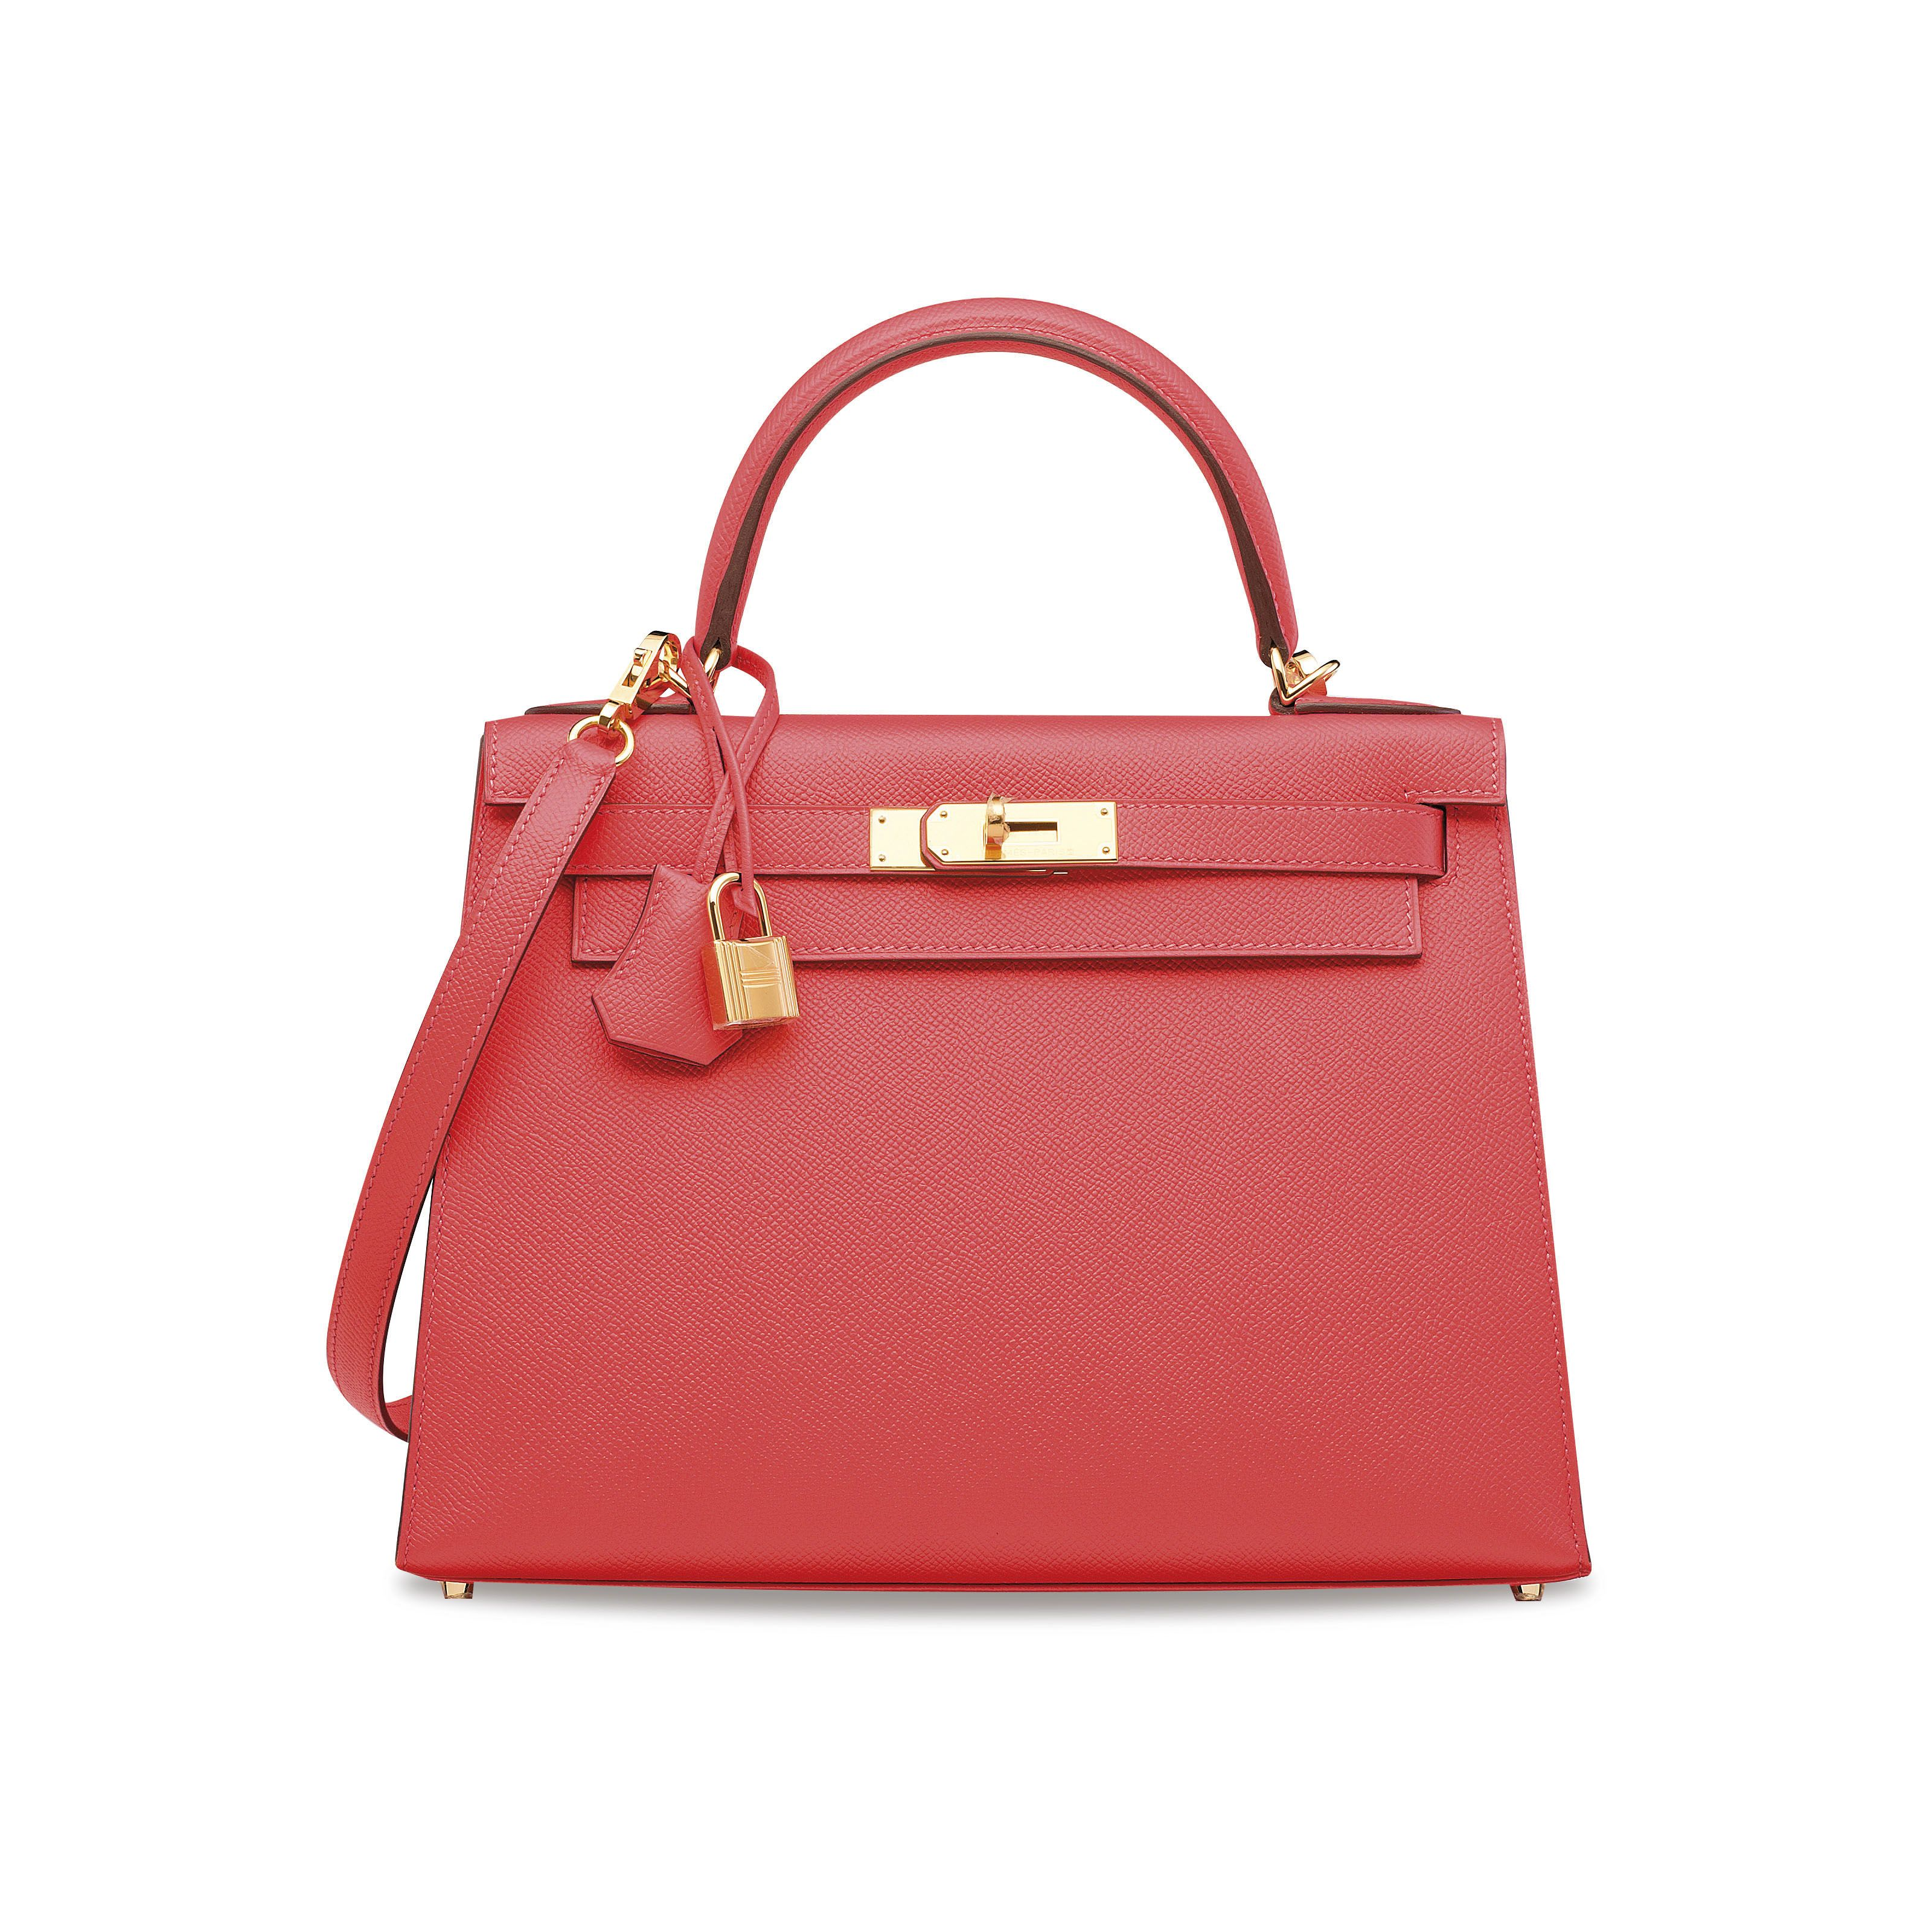 093a21b3da12 A ROSE JAÏPUR EPSOM LEATHER SELLIER KELLY 28 WITH GOLD HARDWARE Hermes Kelly